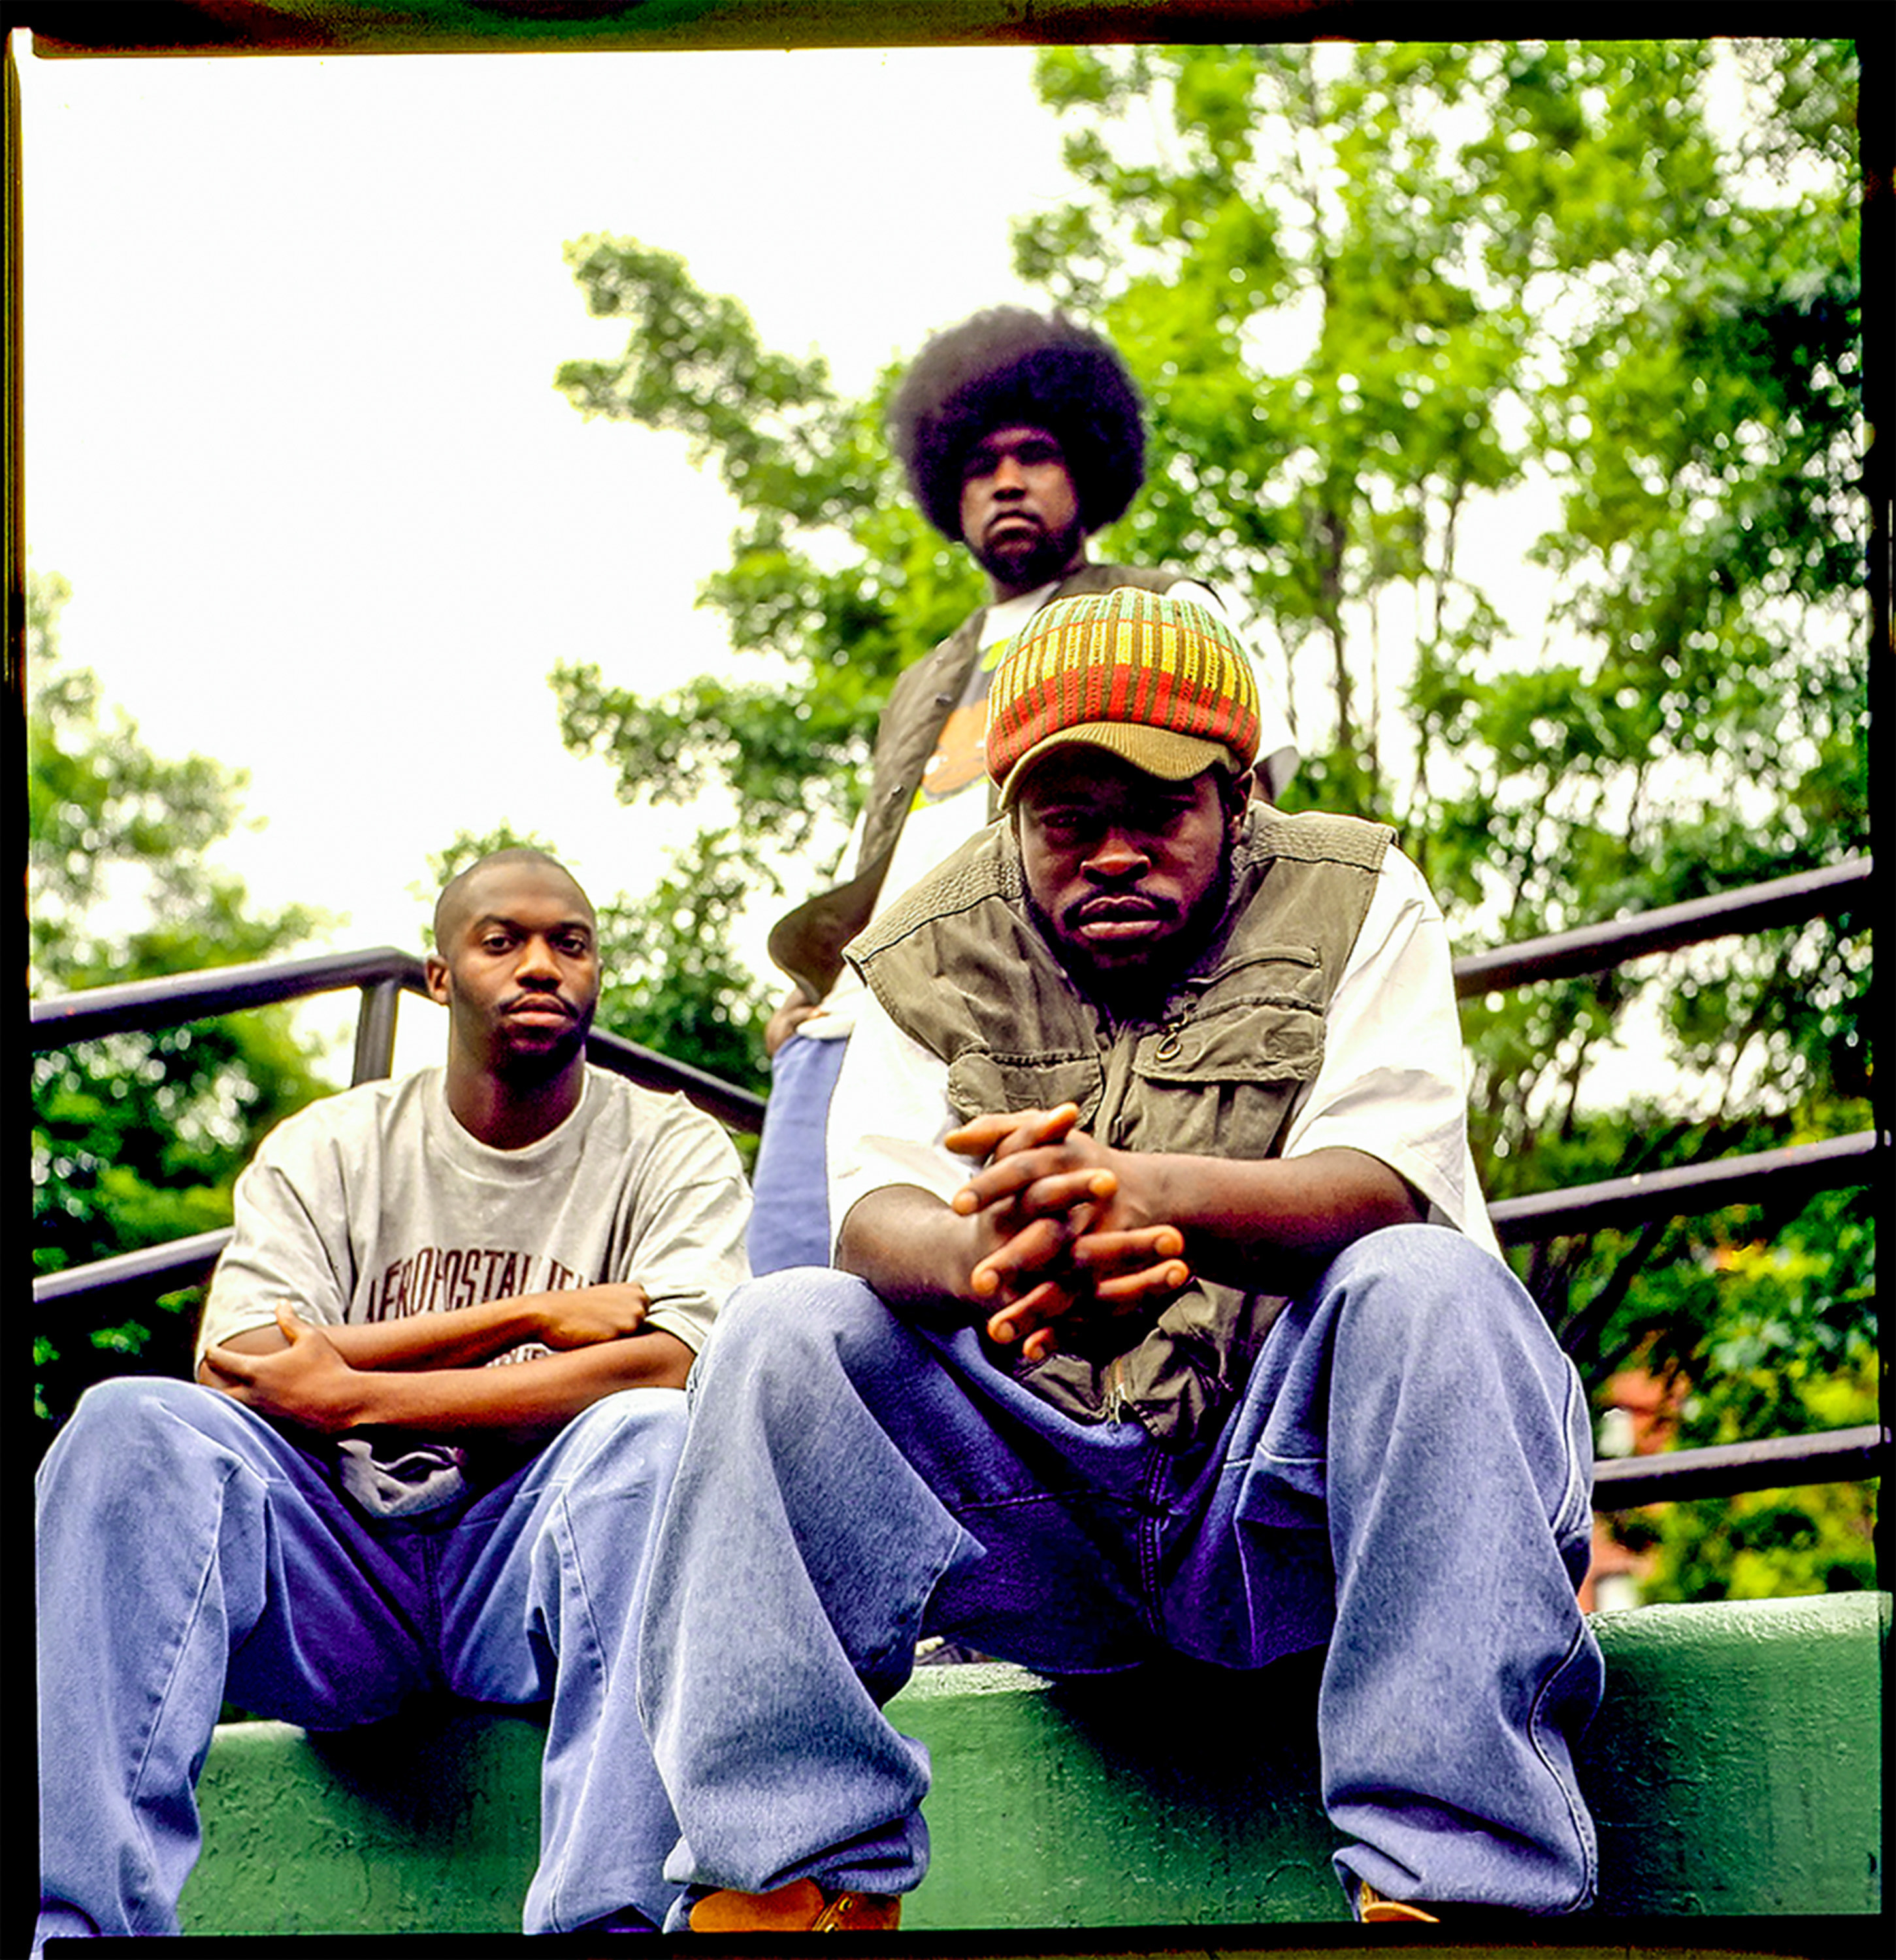 The three members of the Roots outside, looking at the camera, wearing t-shirts and jeans